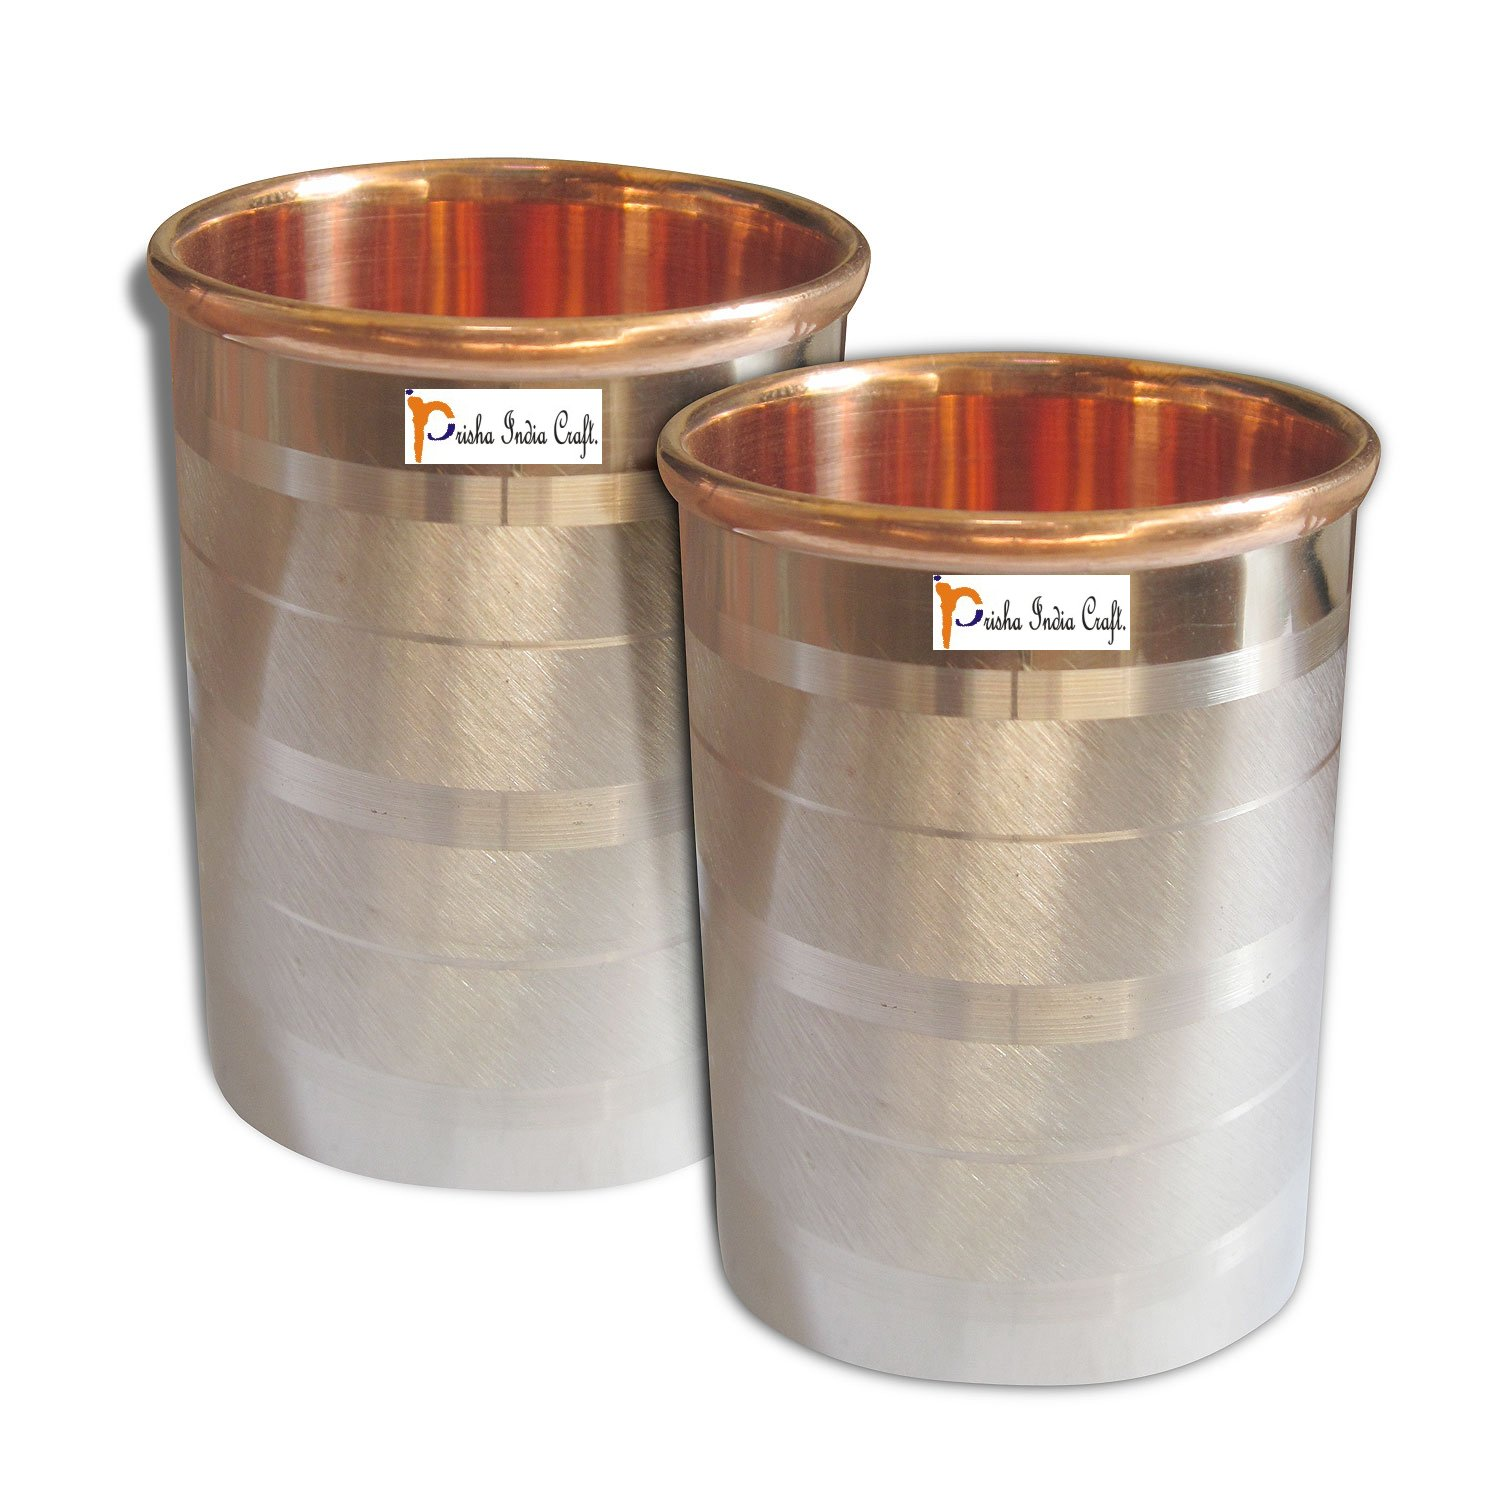 Set of 2 - Prisha India Craft Copper Glass Cup for Water - Handmade Water Glasses - Outside Steel Inside Copper Traveller's Copper Mug for Ayurveda Benefits - CHRISTMAS GIFT ITEM